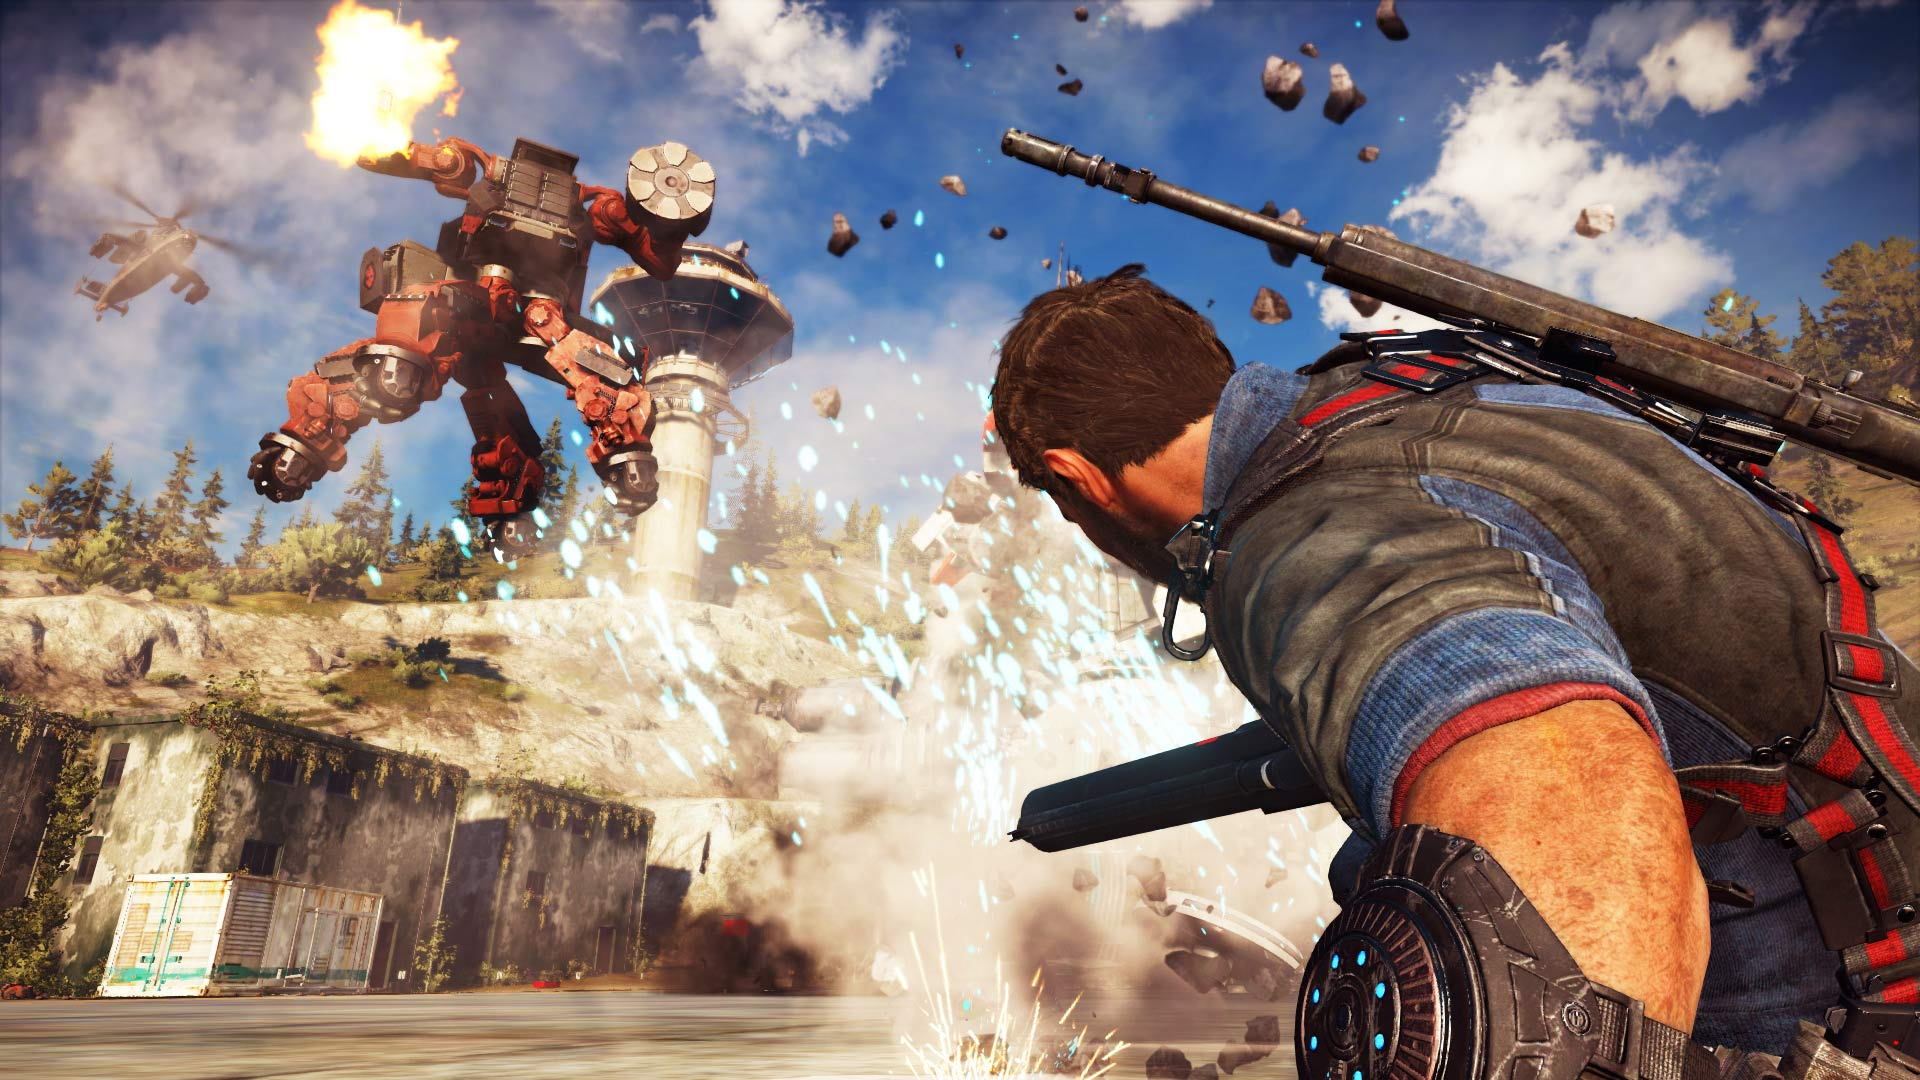 Just Cause 3 Wallpaper: Just Cause 3 1080P, HD Games, 4k Wallpapers, Images